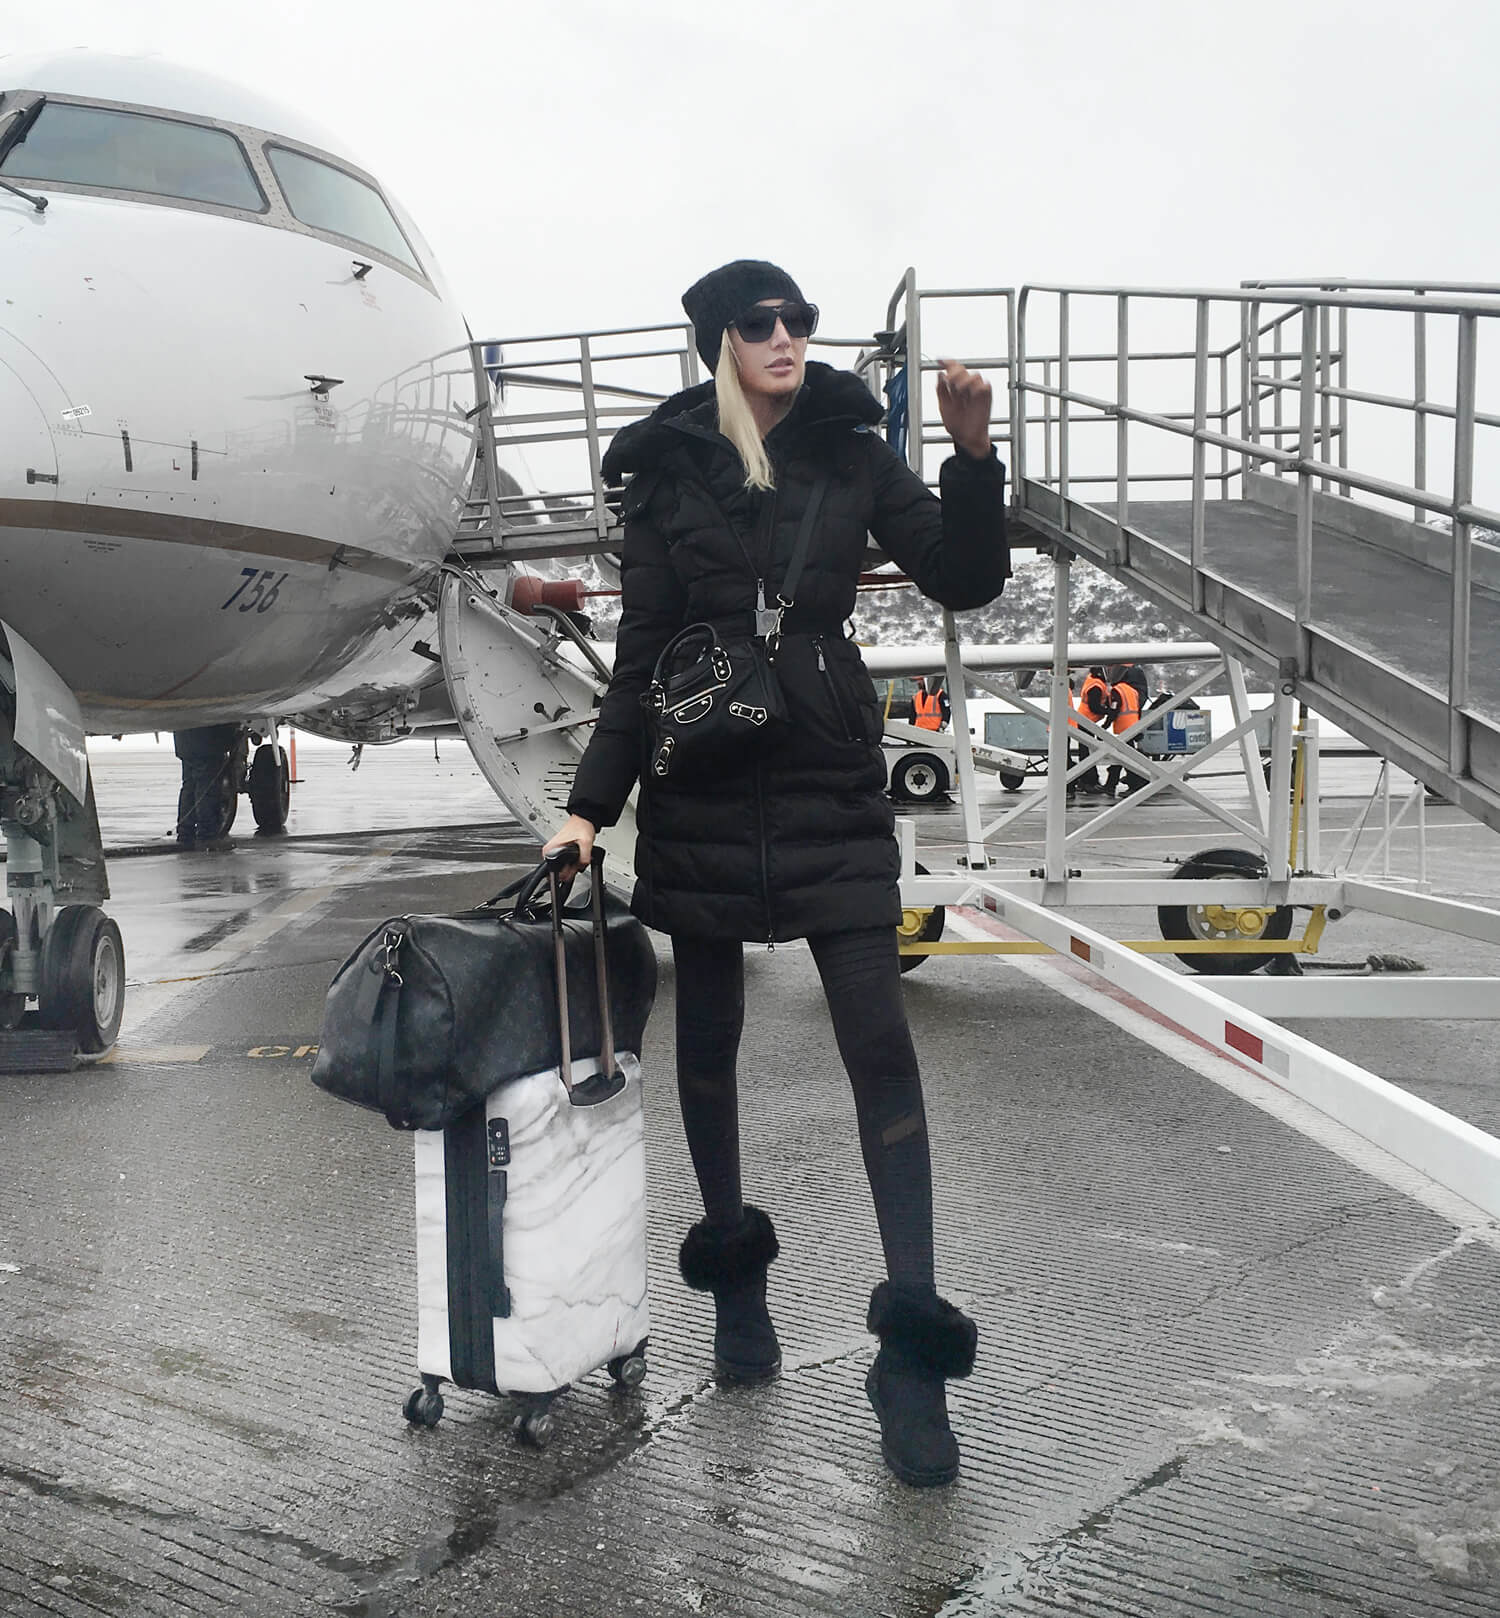 Cute Airport Outfits for Winter / Aspen Travel Outfit - Carly Cristman